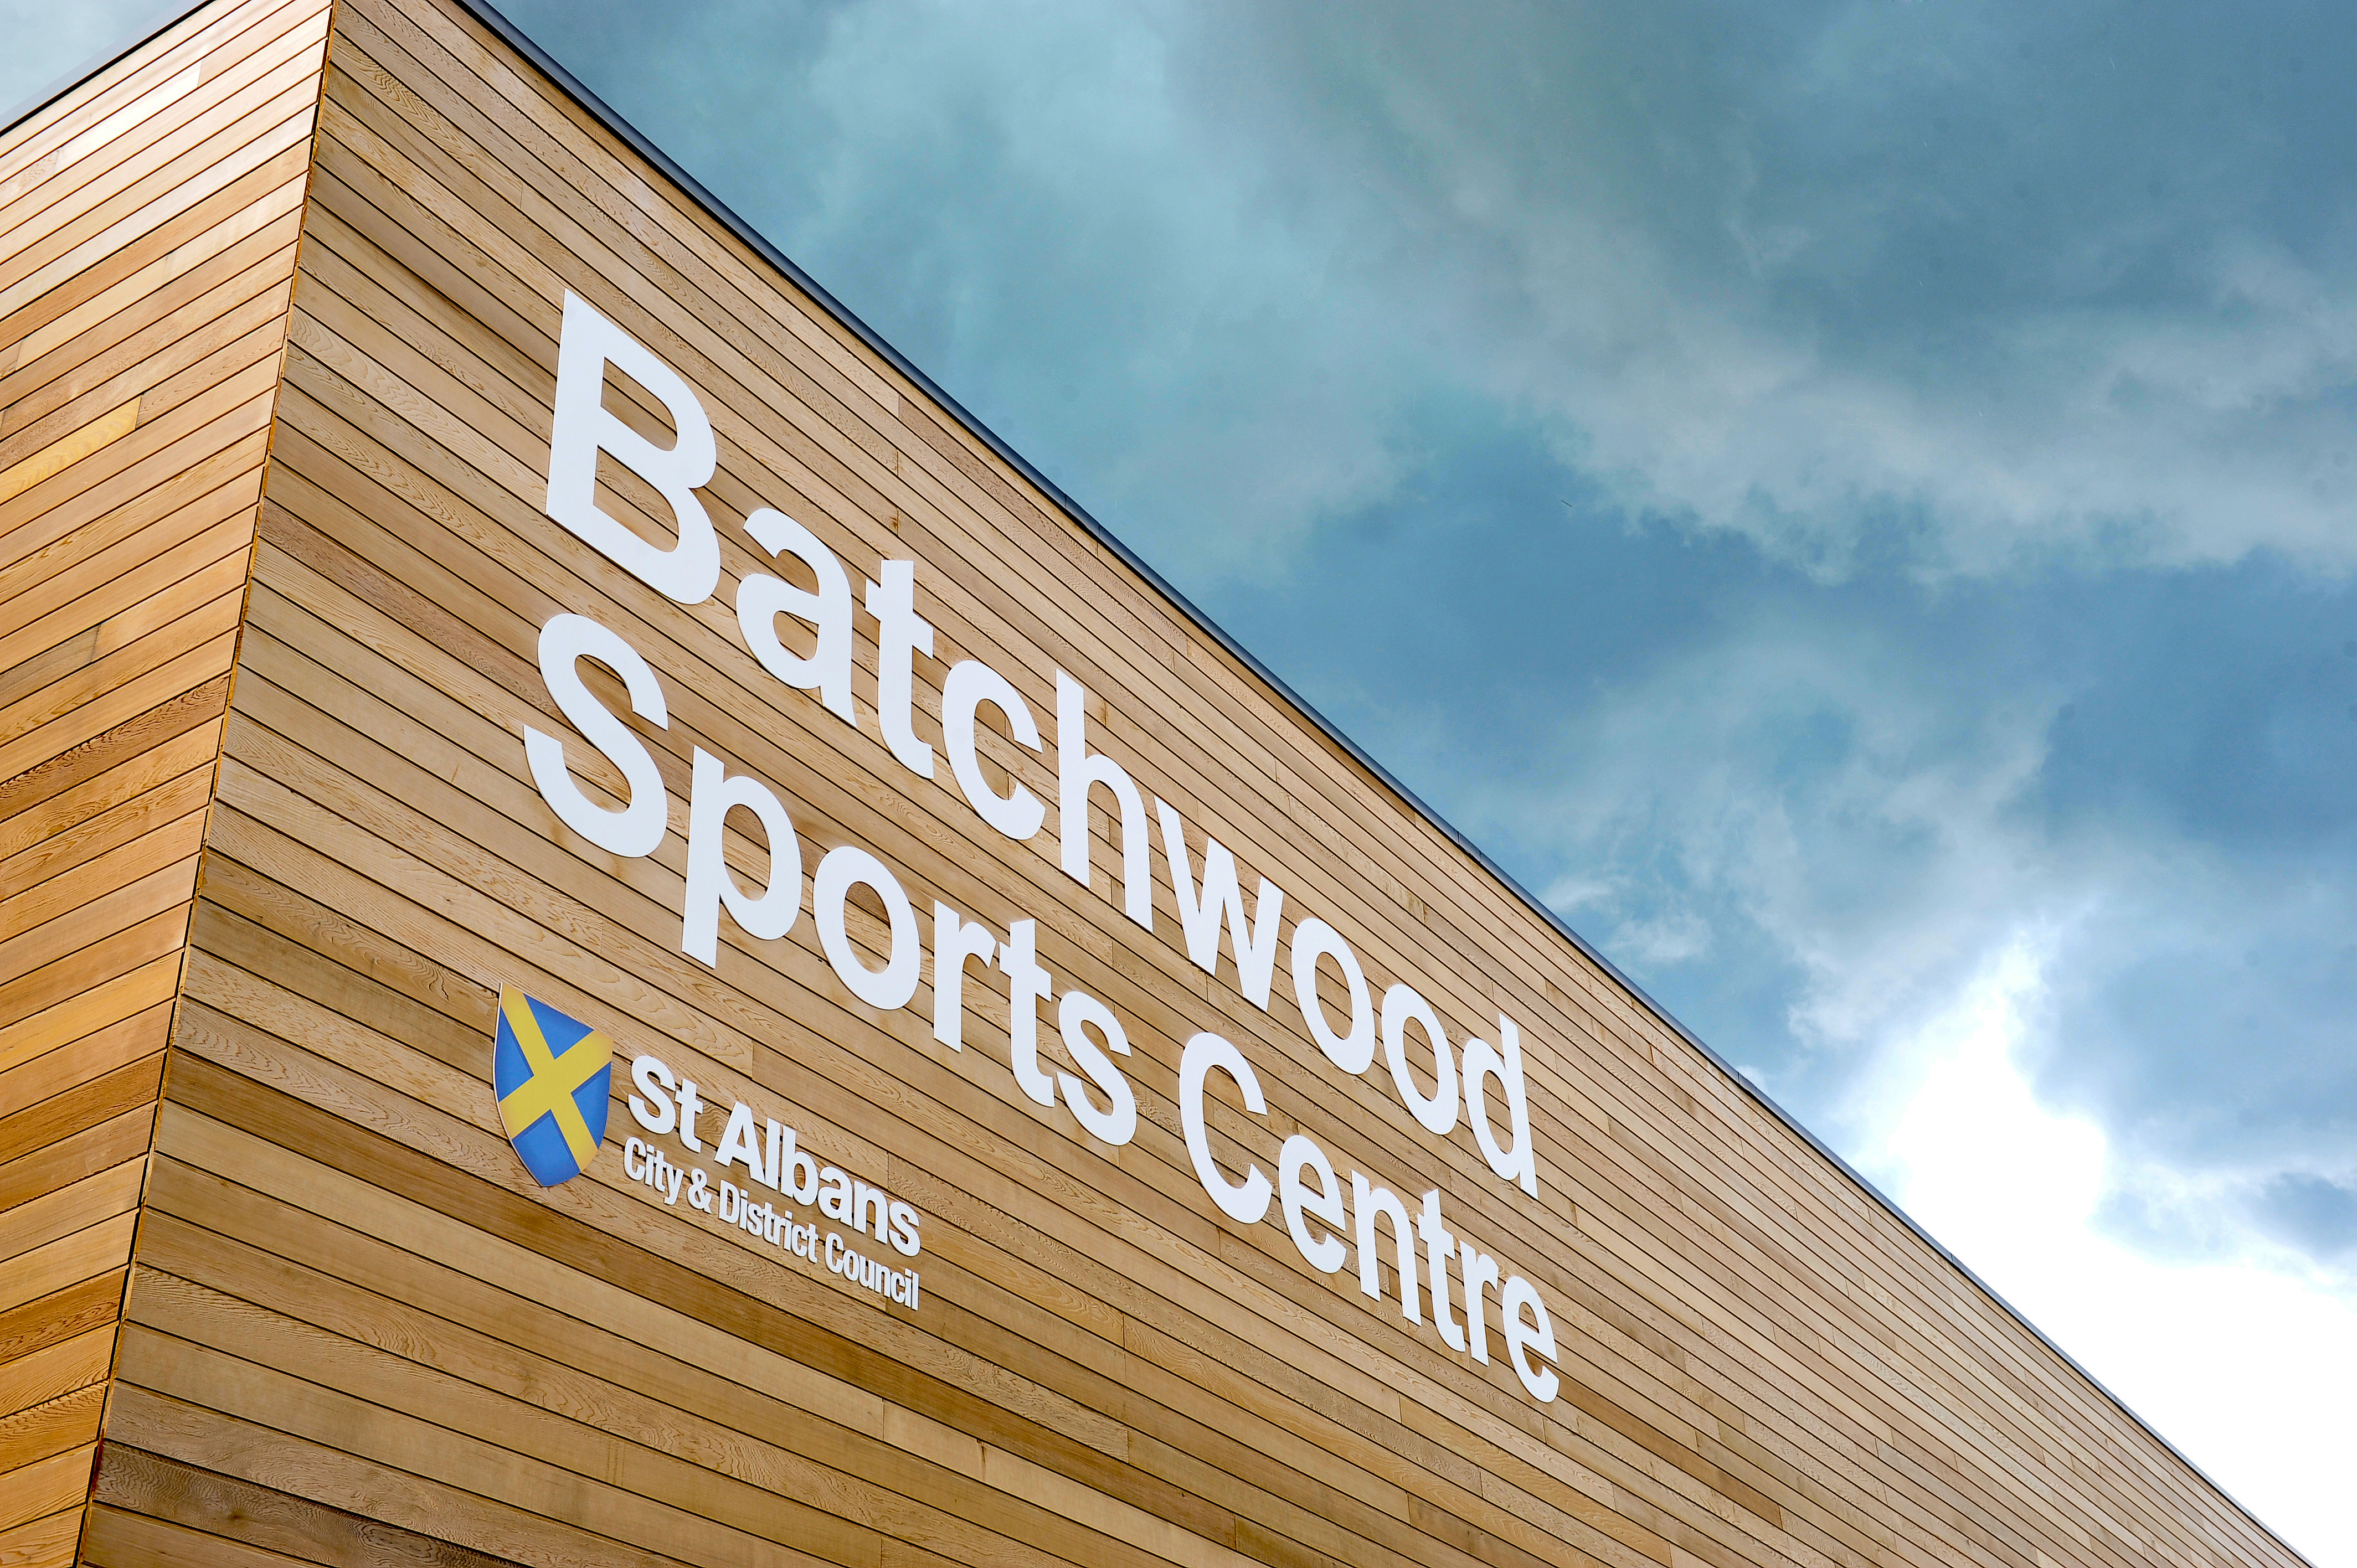 The new Batchwood Golf Course & Sports Centre features a range of fantastic facilities